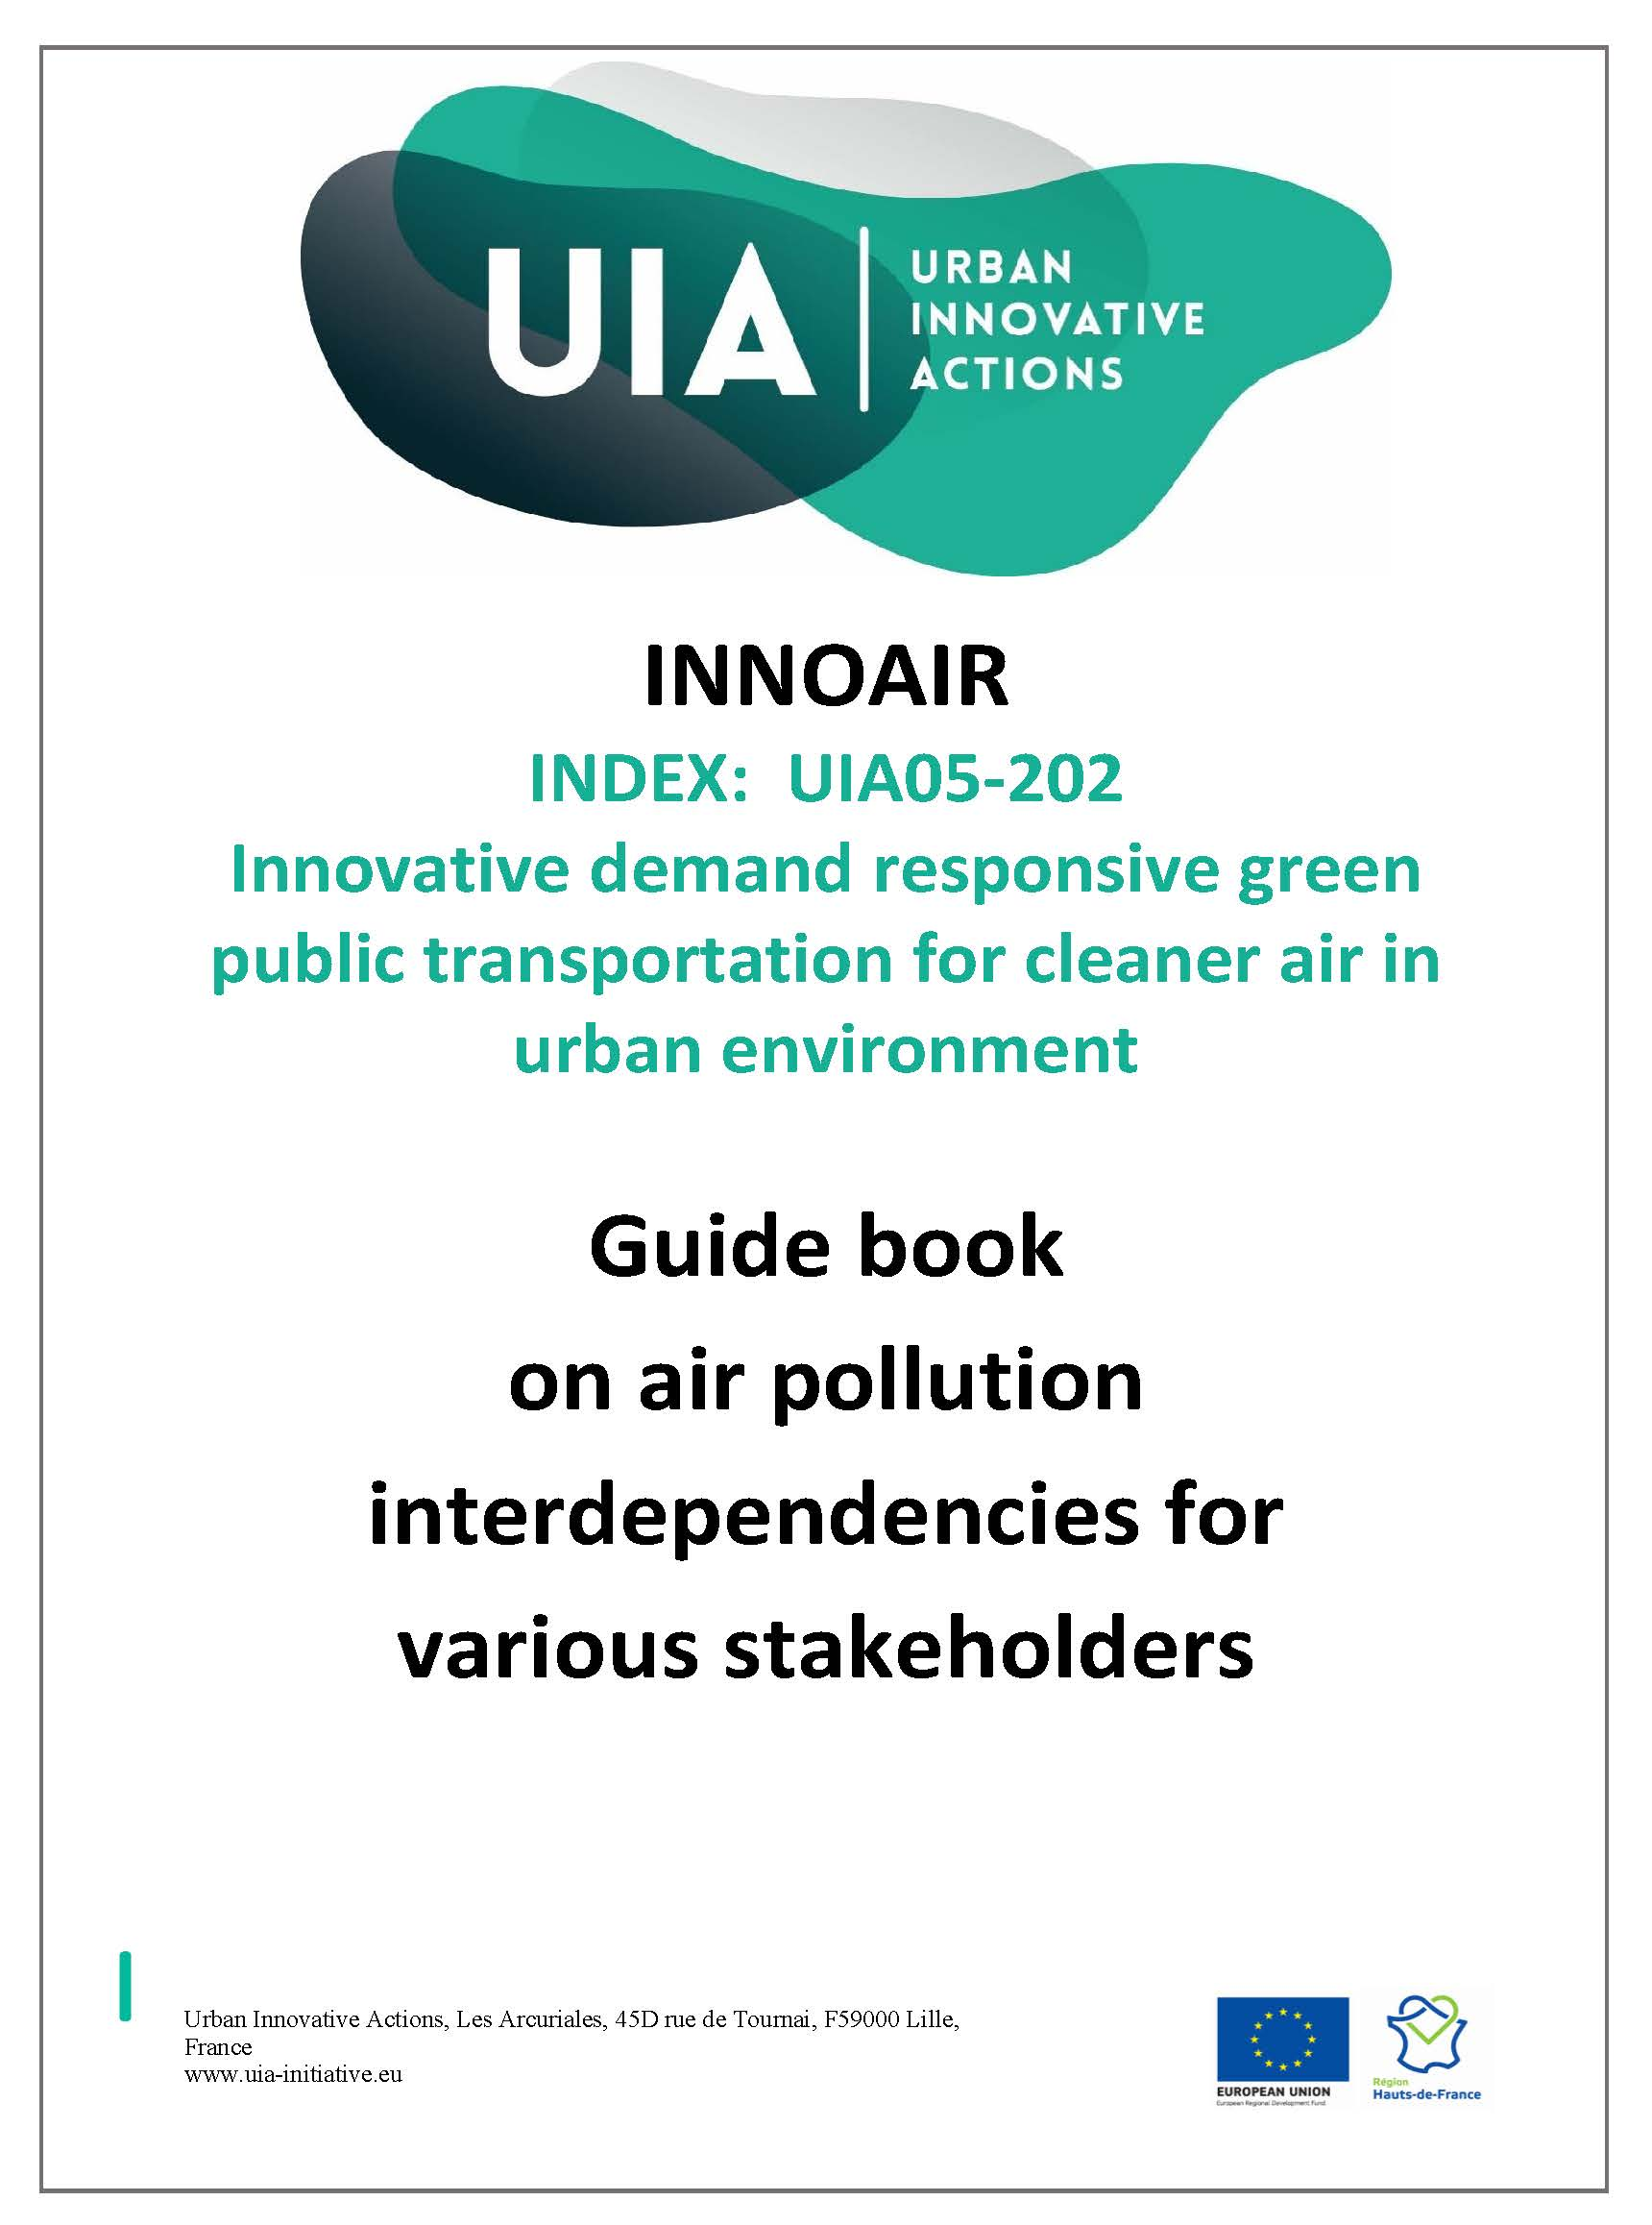 THE GUIDEBOOK ON AIR POLLUTION INTERDEPENDENCIES FOR VARIOUS STAKEHOLDERS IS NOW PUBLISHED